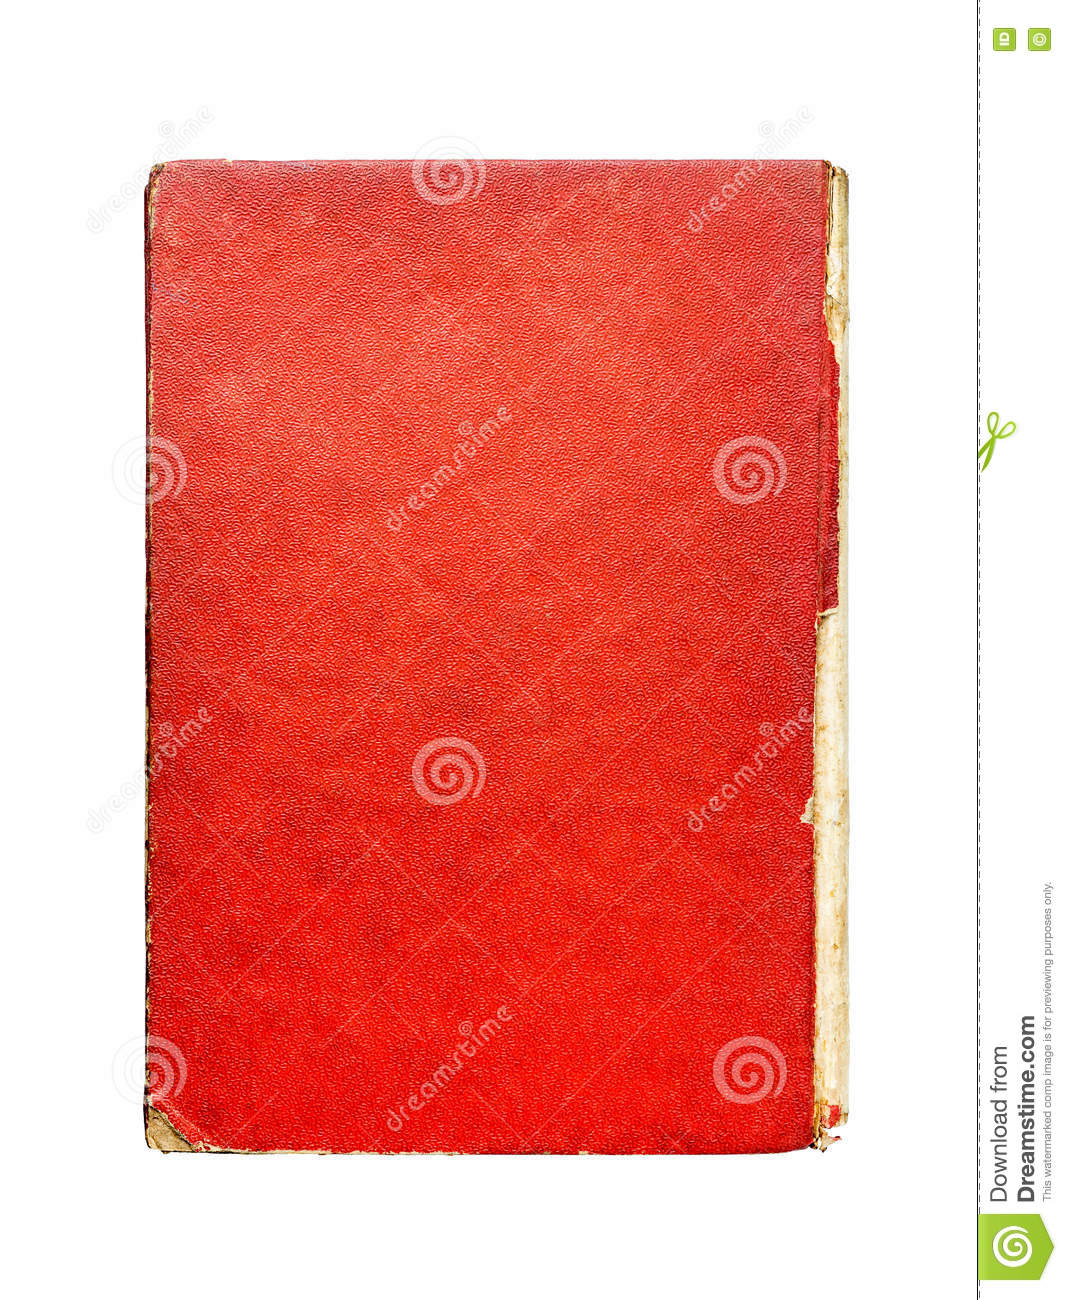 Hardcover Book Texture : Abstract vintage old paper texture stock image